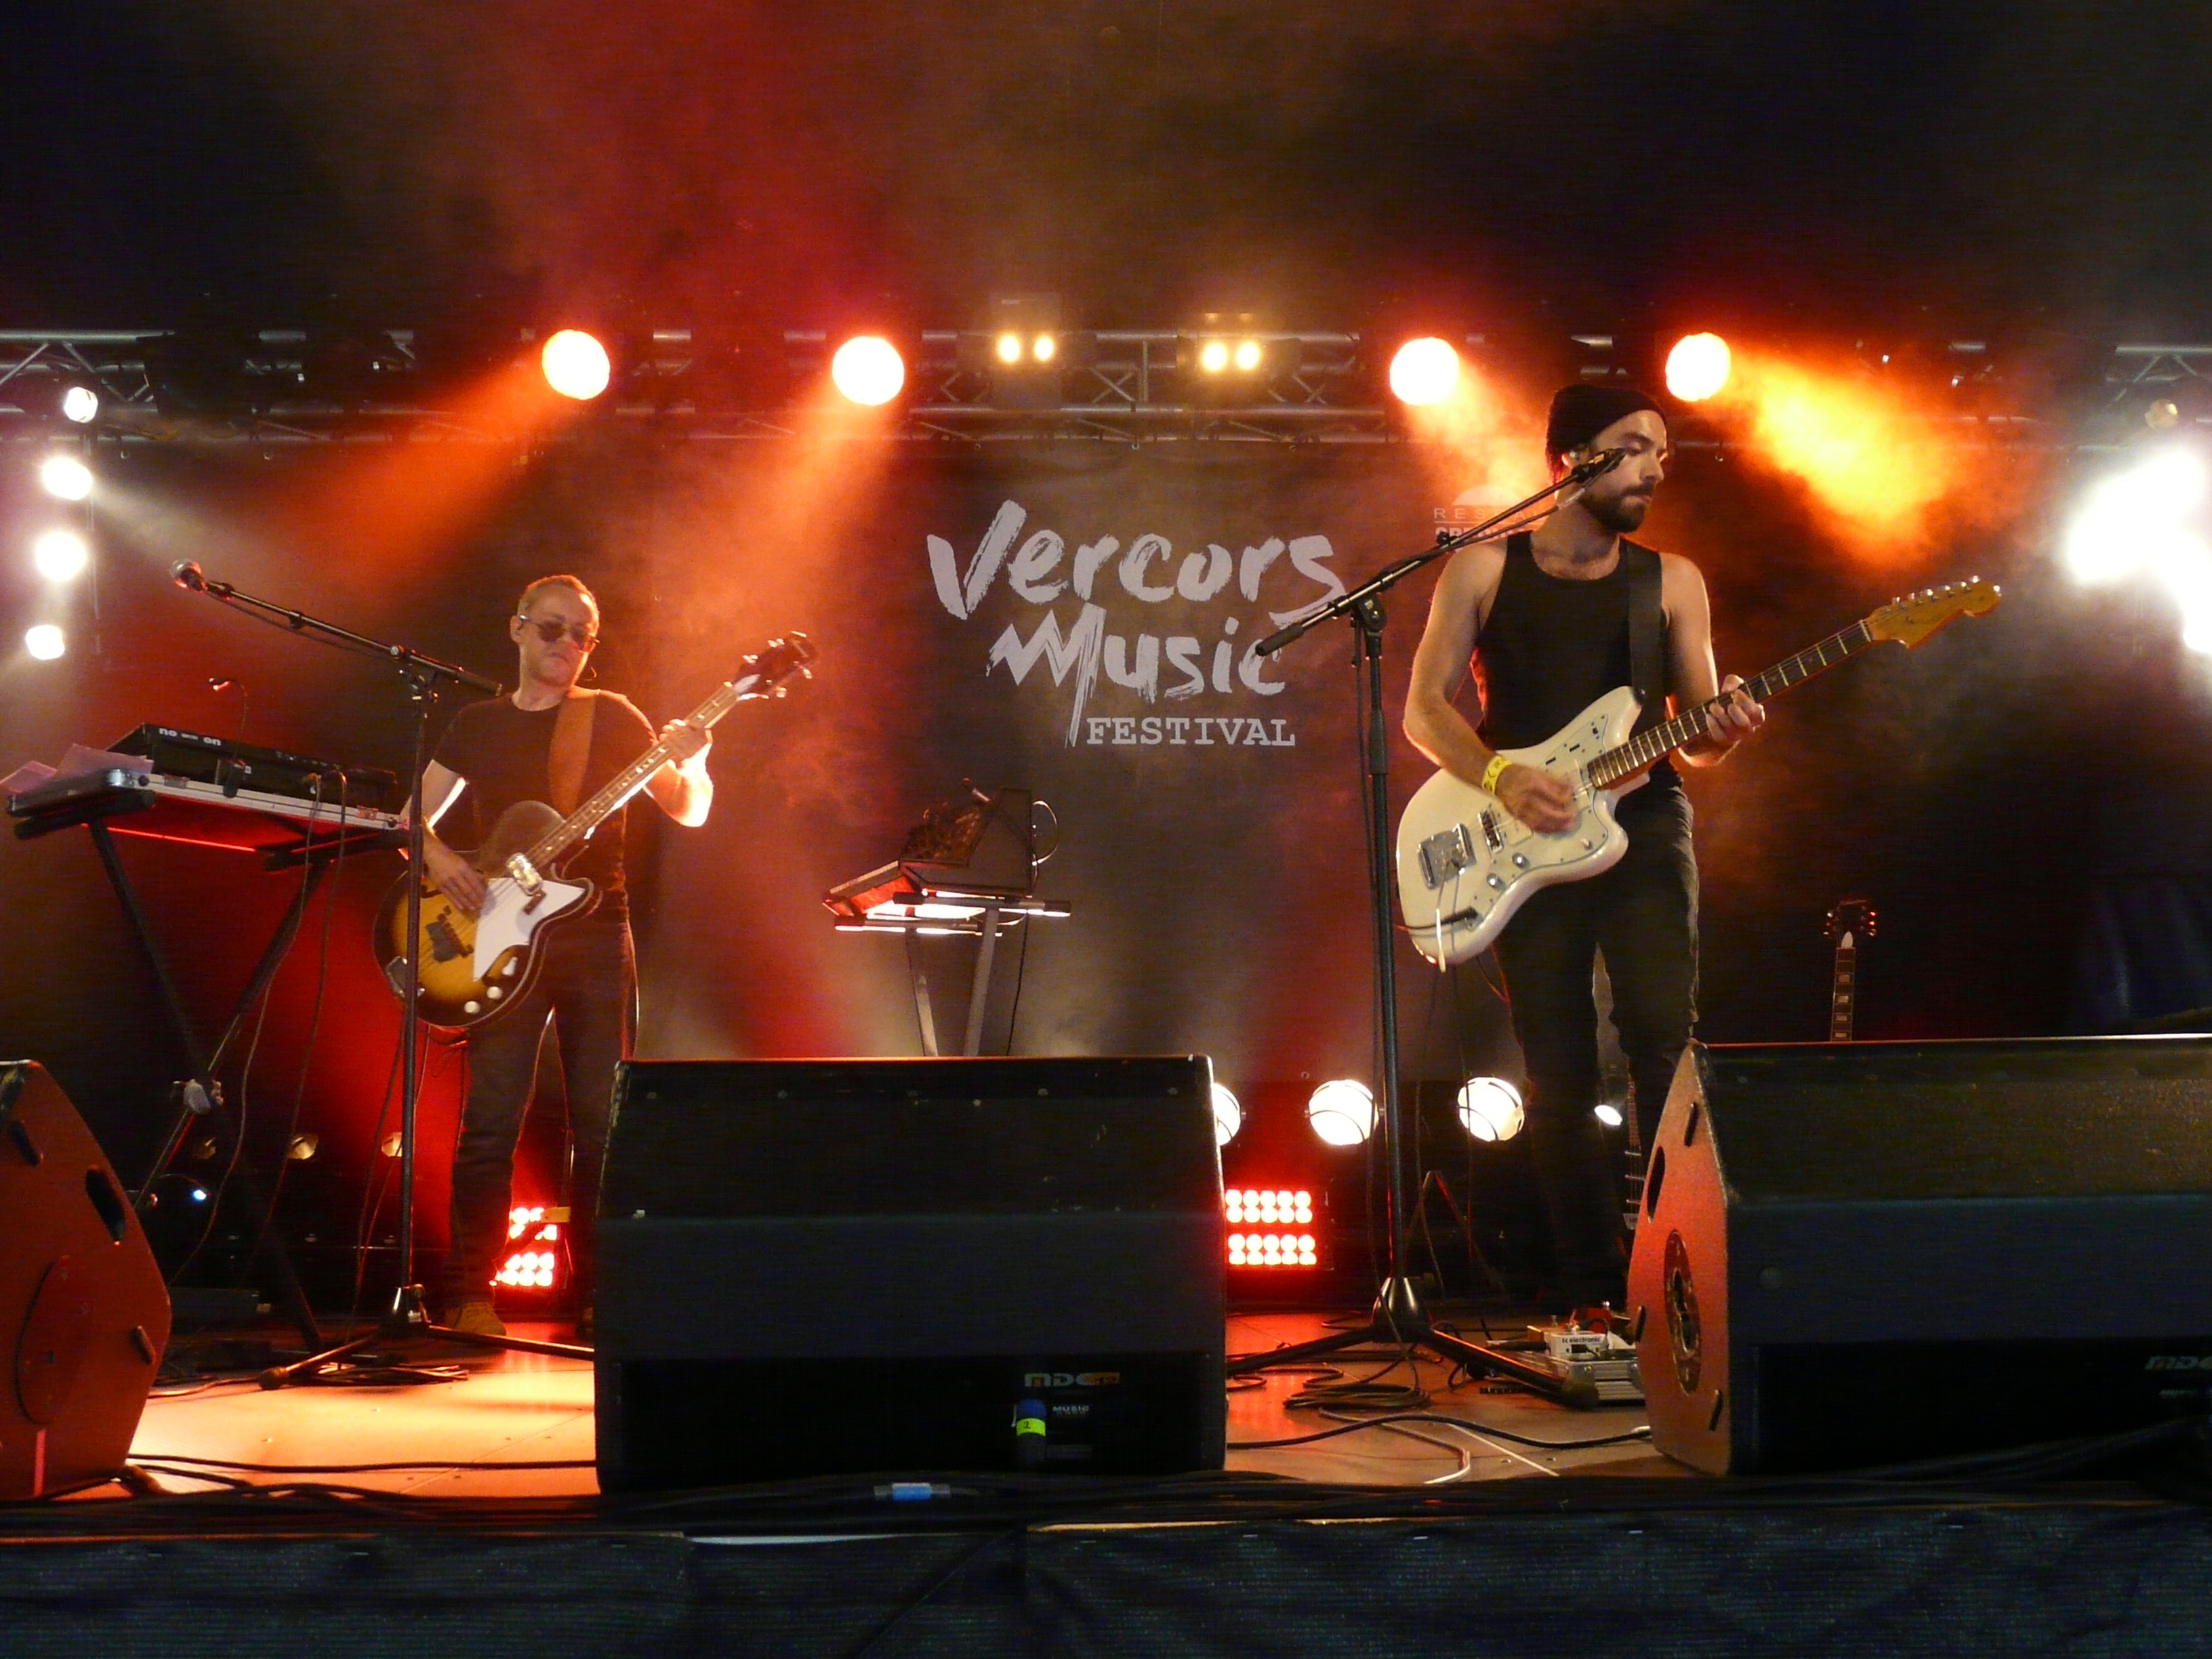 NO MONEY KIDS FESTIVAL VERCORS MUSIC AUTRANS 9 JUILLET 2017 15